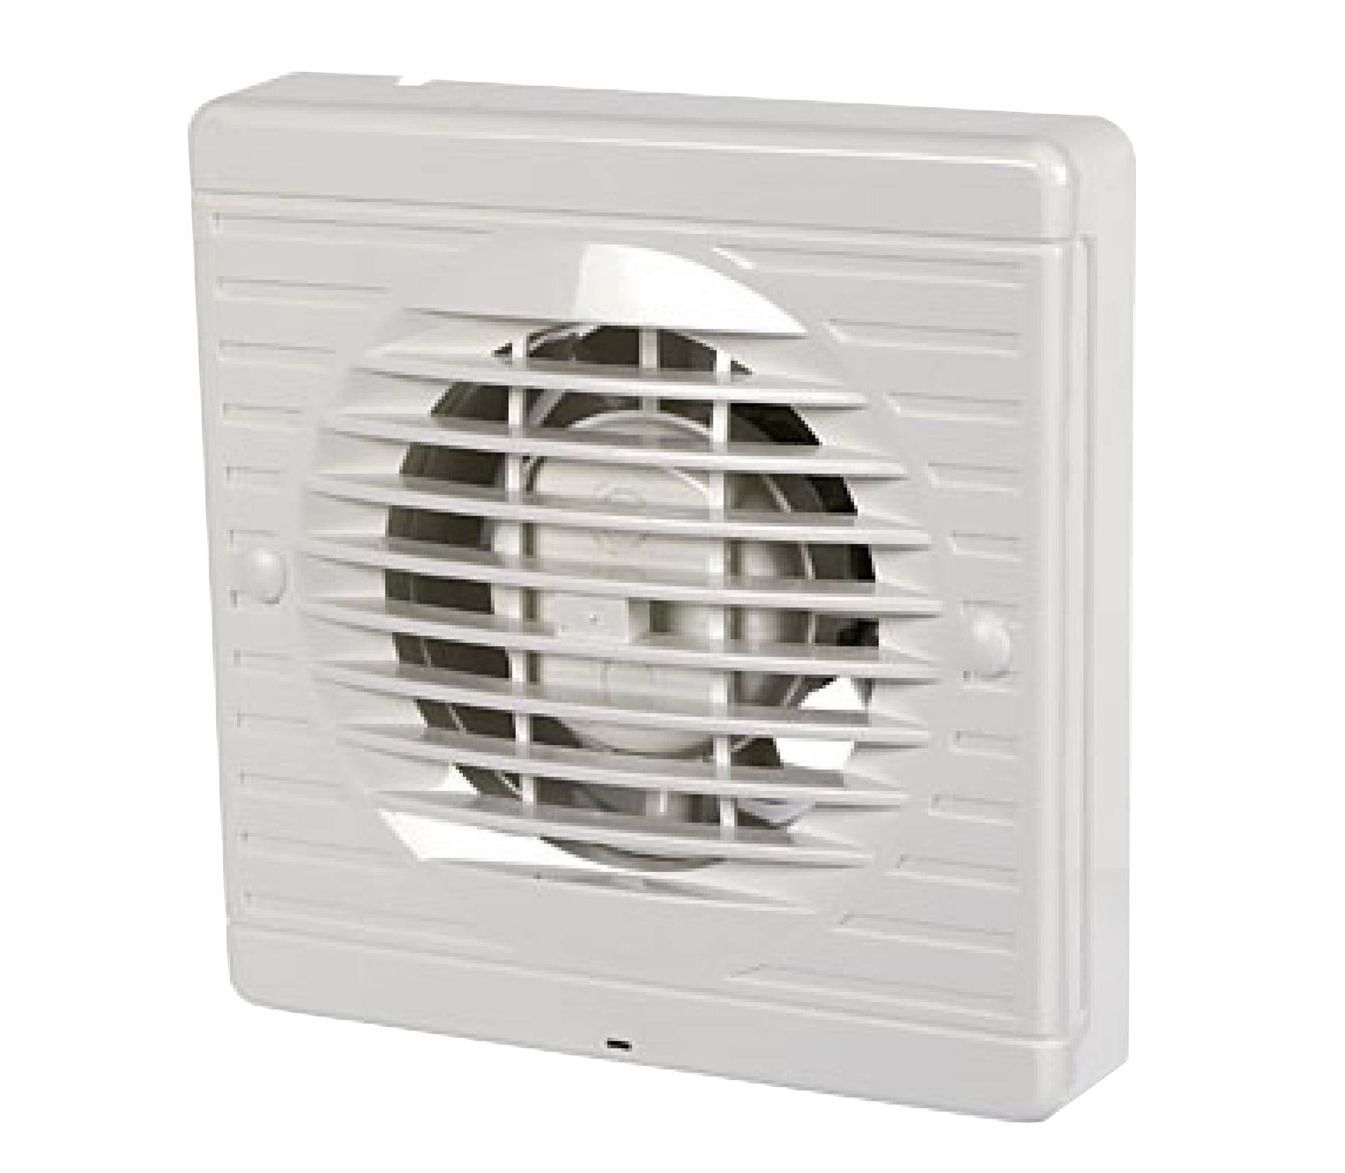 Manrose Gold Mg150bs Bathroom Extractor Fan 149 Mm Departments Diy At B Amp Q